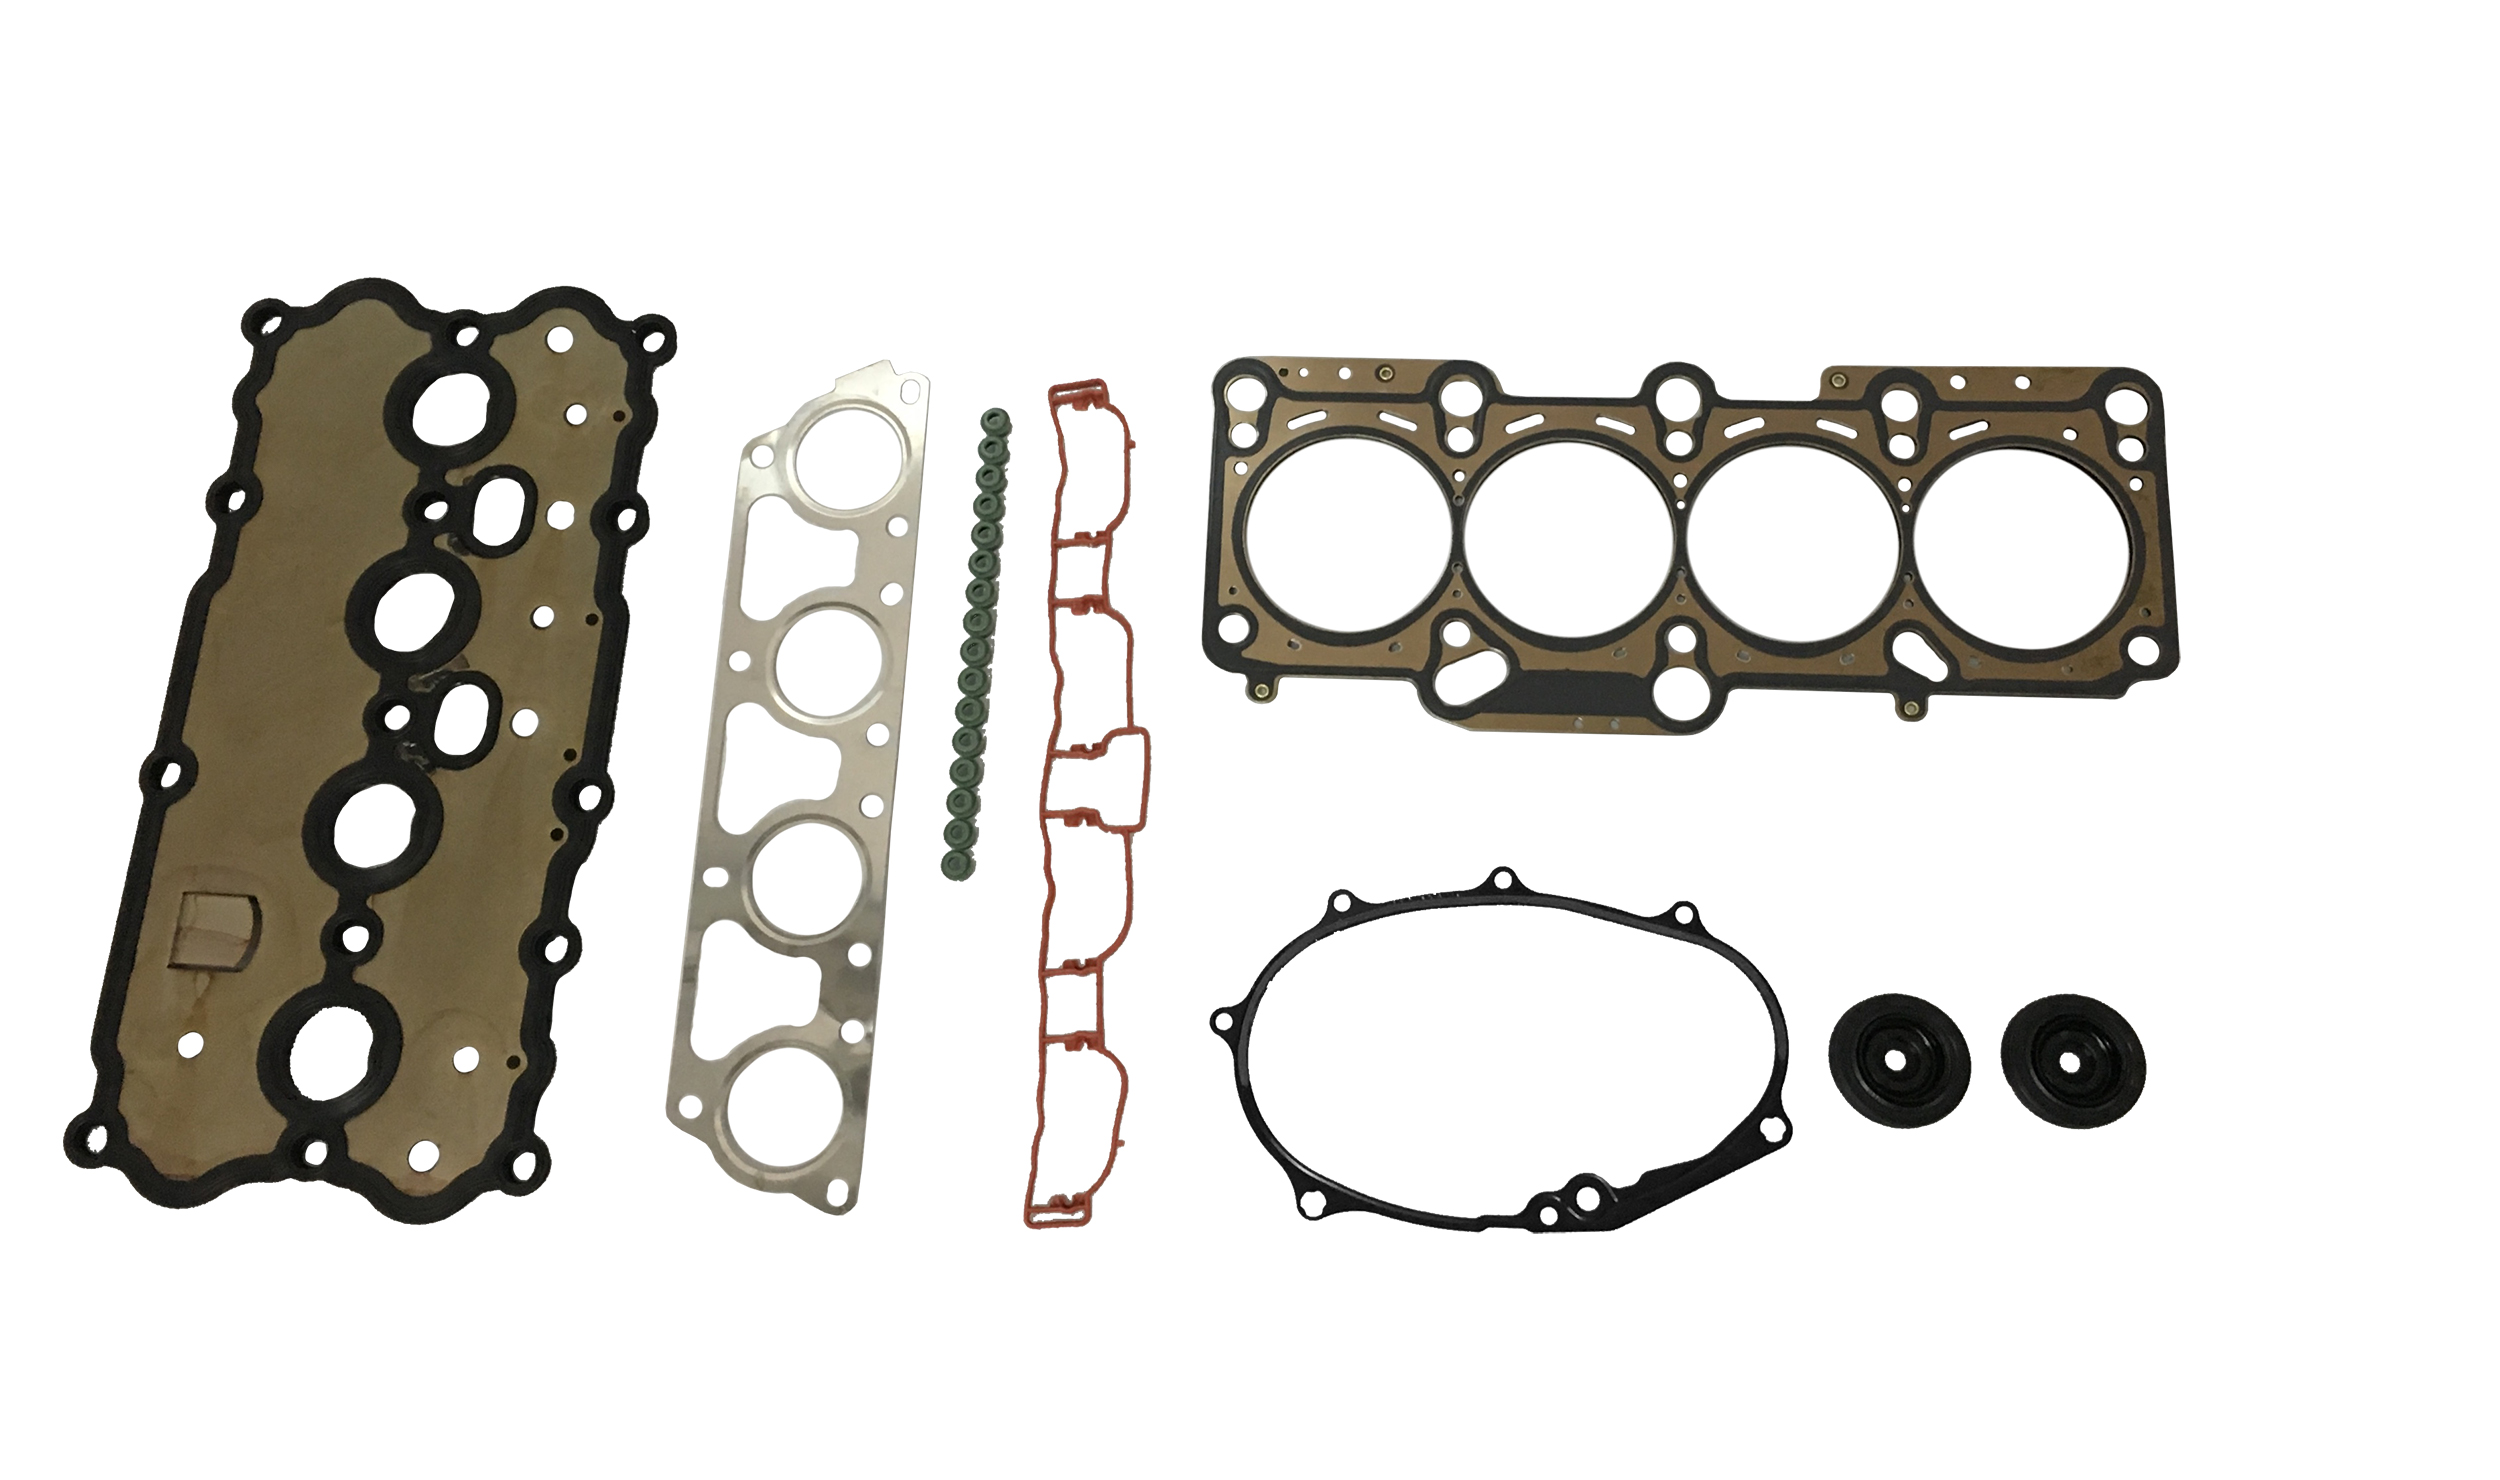 Cylinder head gasket cylinder head gasket set VW 2.0 FSI BLR 06D103383L NEW